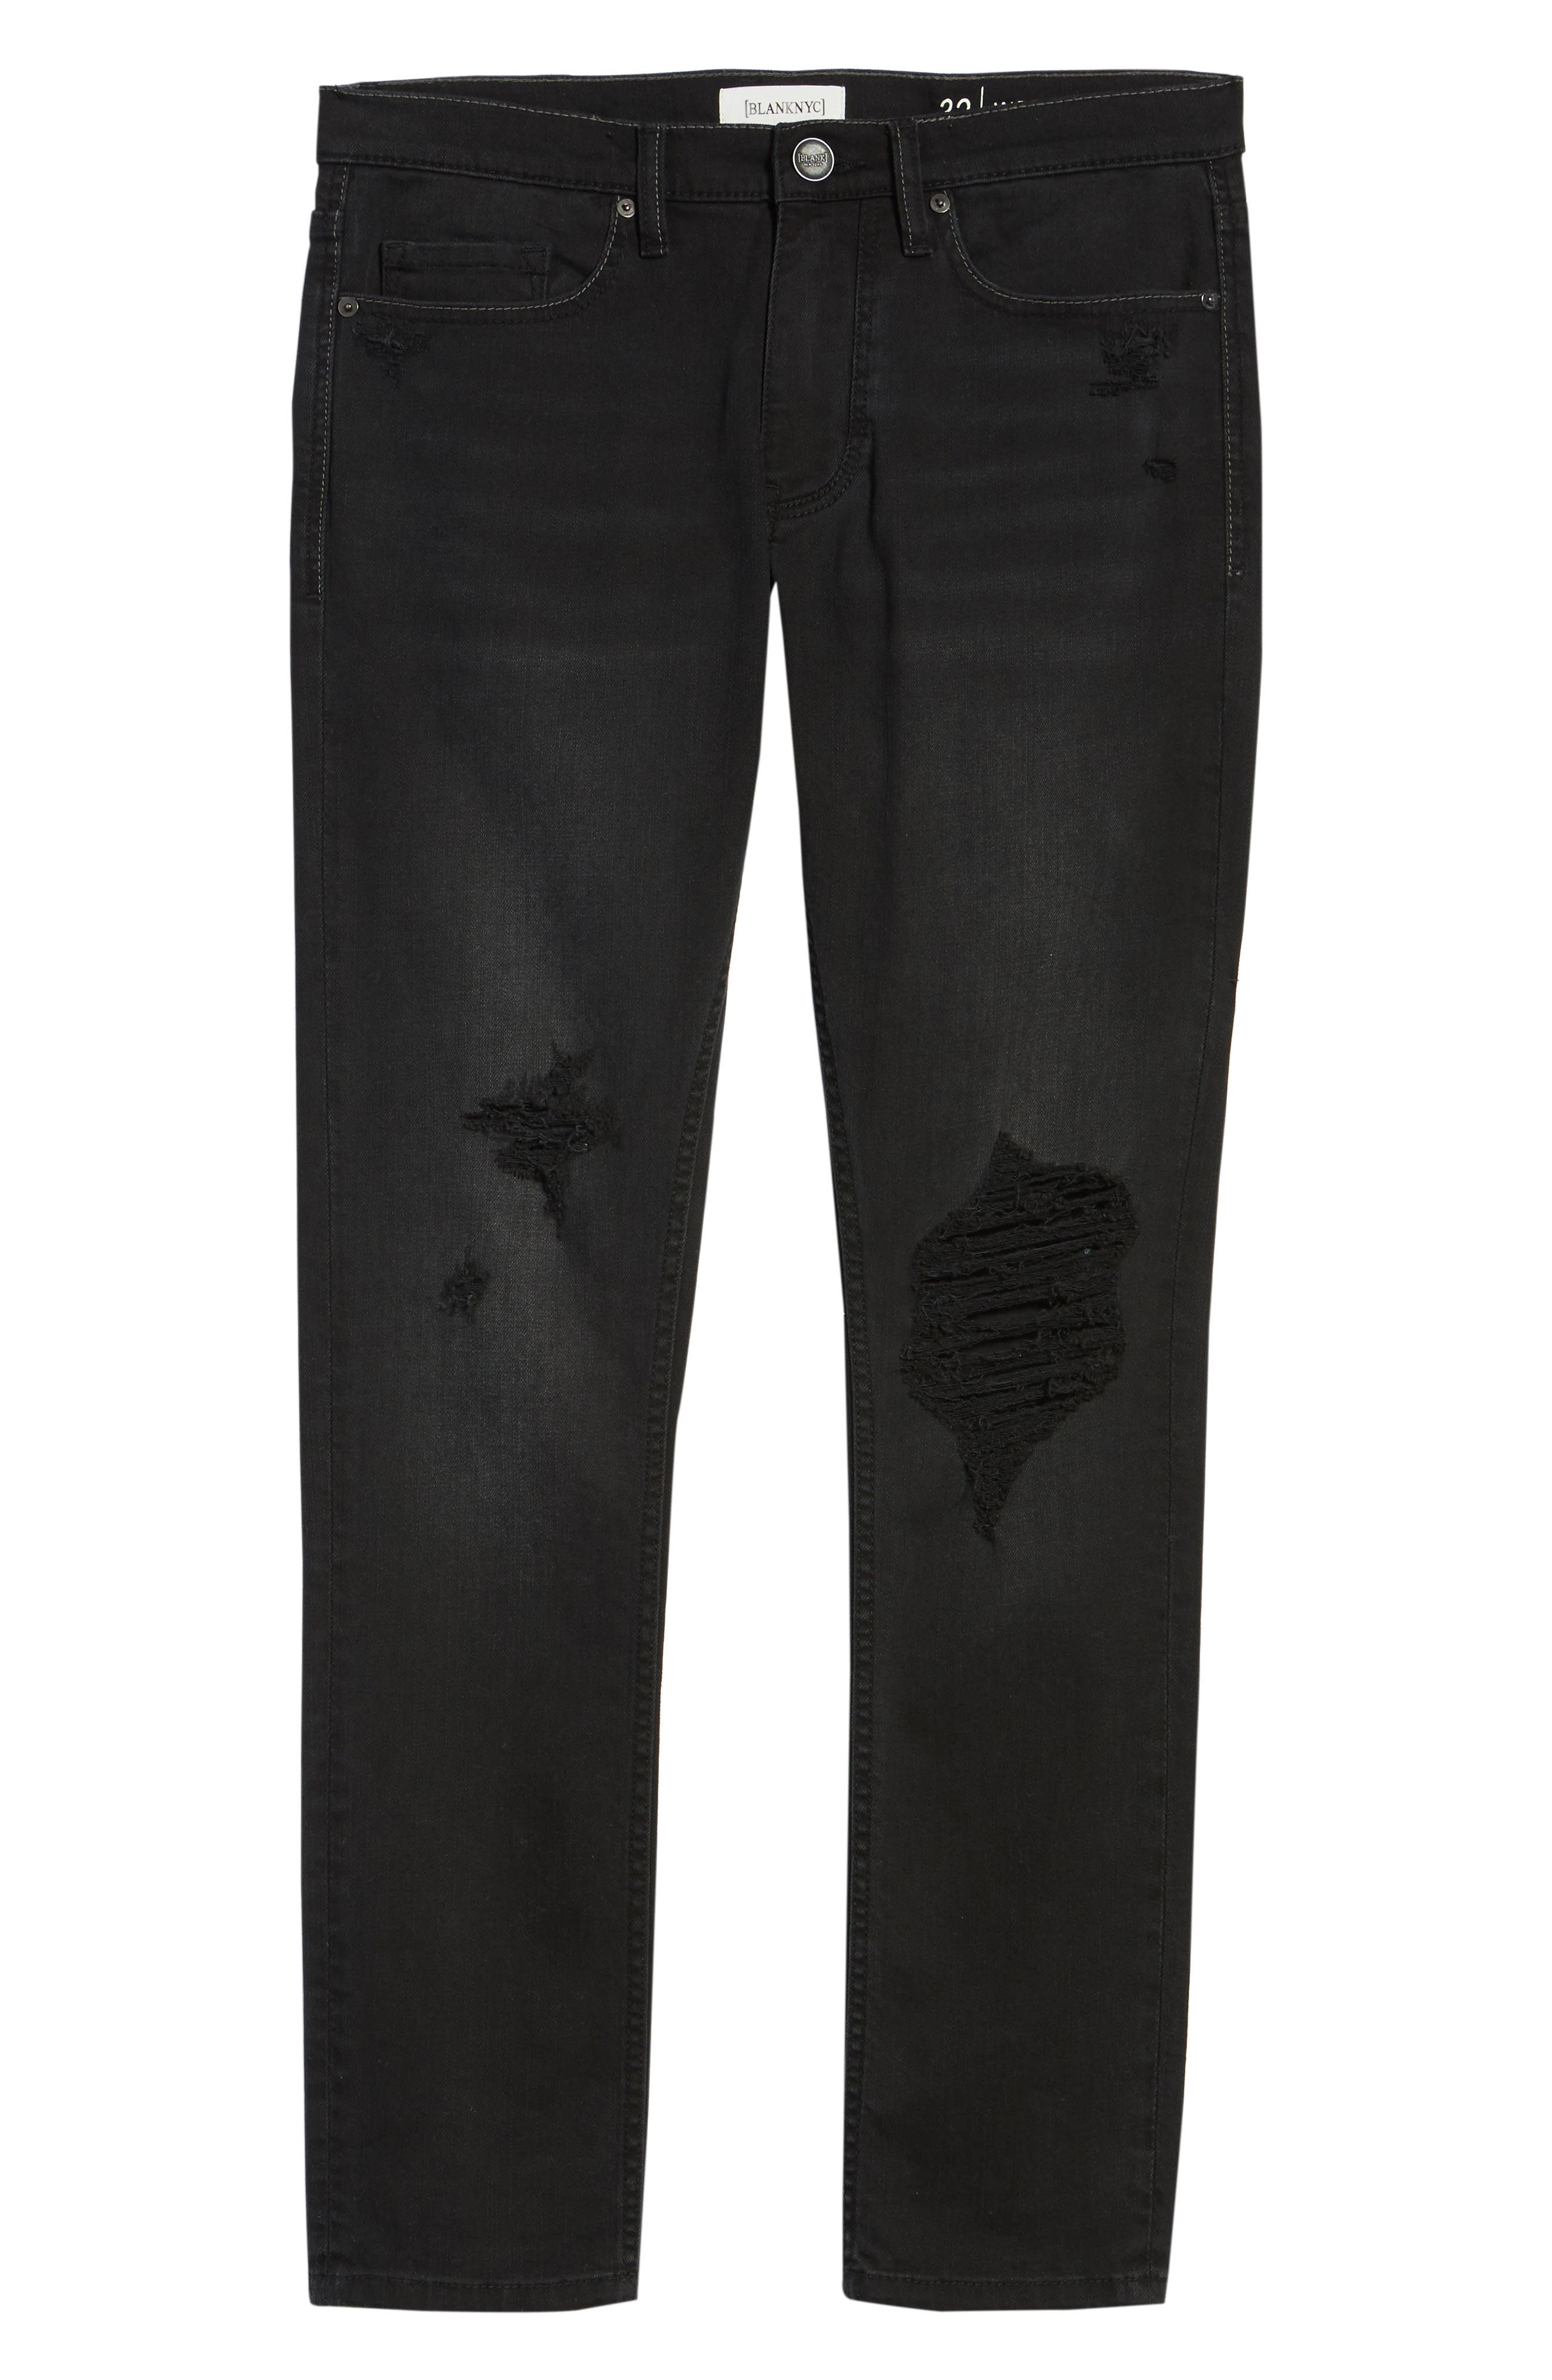 Wooster Slim Fit Jeans,                             Alternate thumbnail 6, color,                             WILLING BOUNDARY